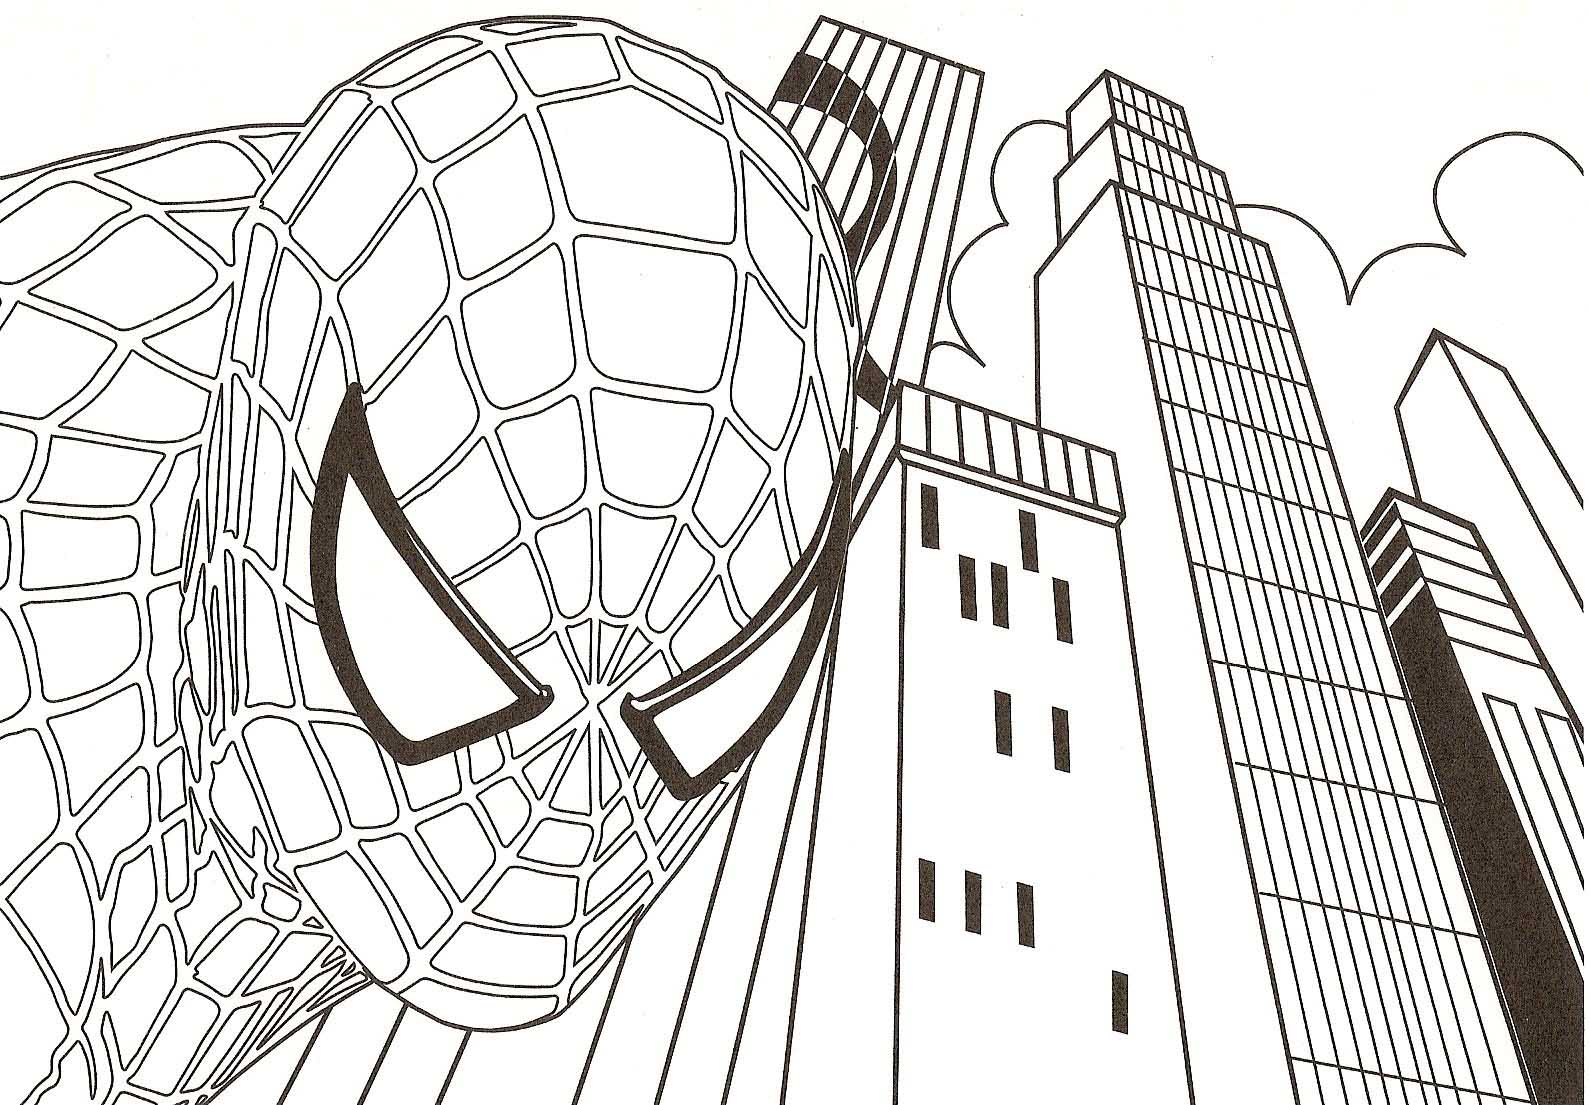 Colouring in pages games - Spiderman Coloring Pages Games